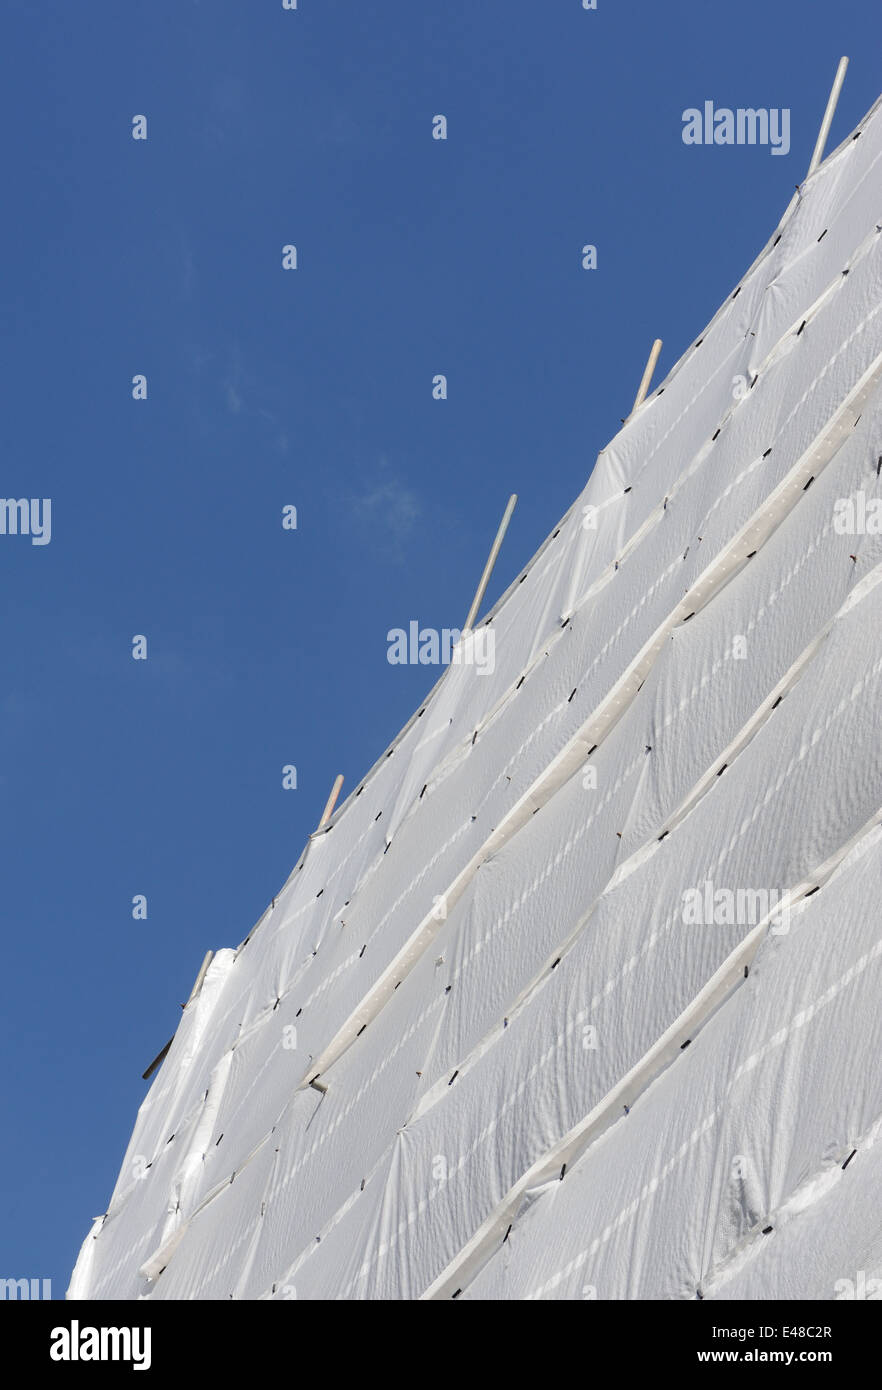 White plastic sheeting covers scaffolding on a building site. City of London, UK. - Stock Image